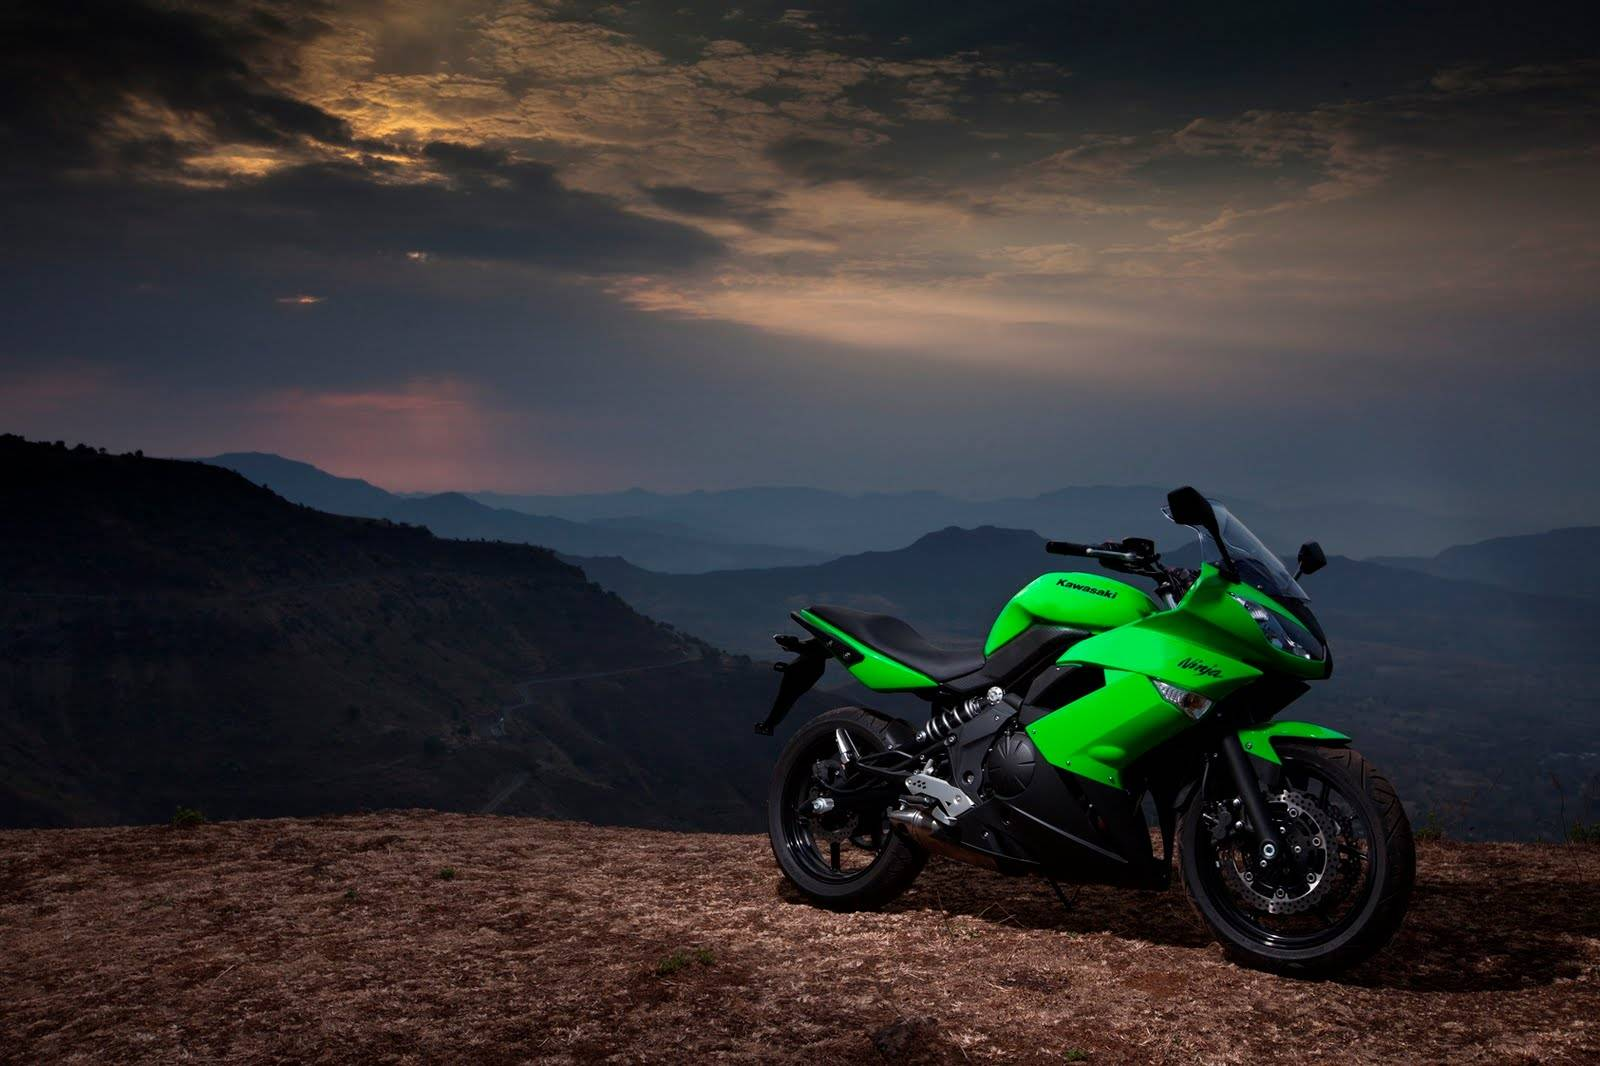 Zx6r Wallpaper 46 images on Genchiinfo 1600x1066